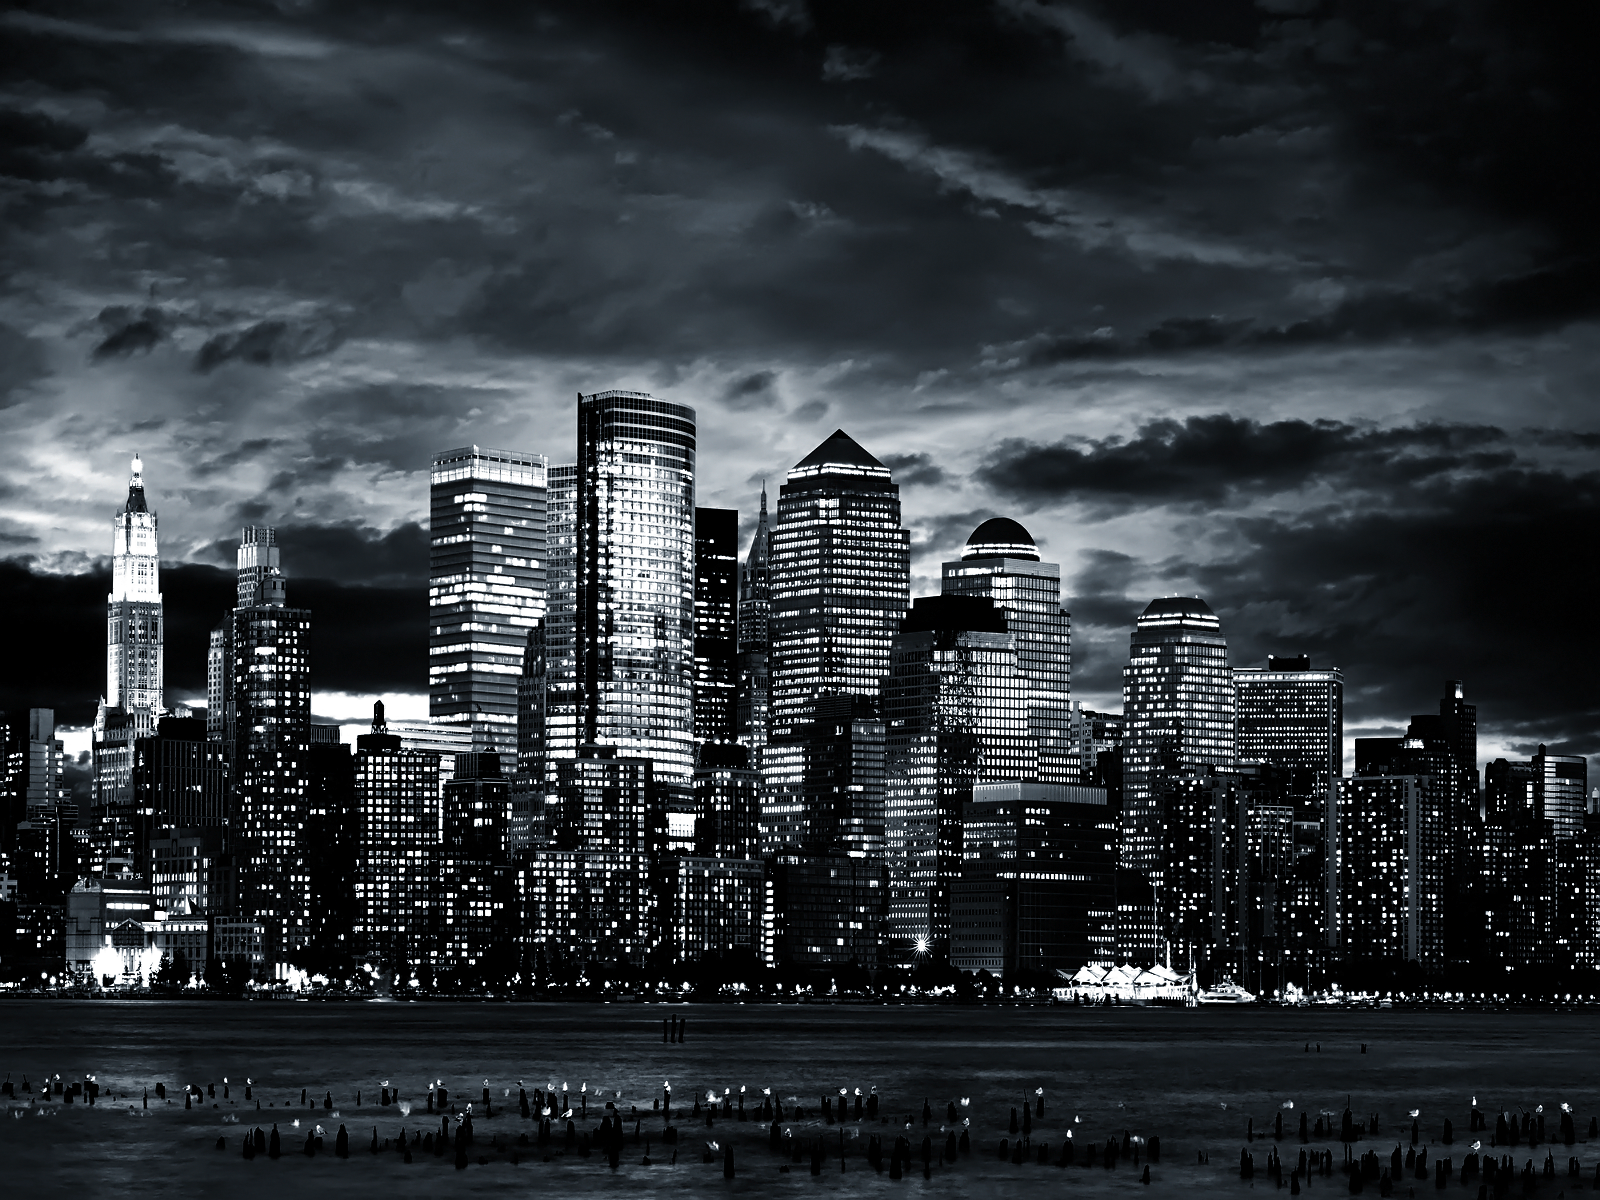 Free Download Black And White City By The Sea Wallpaper Ii